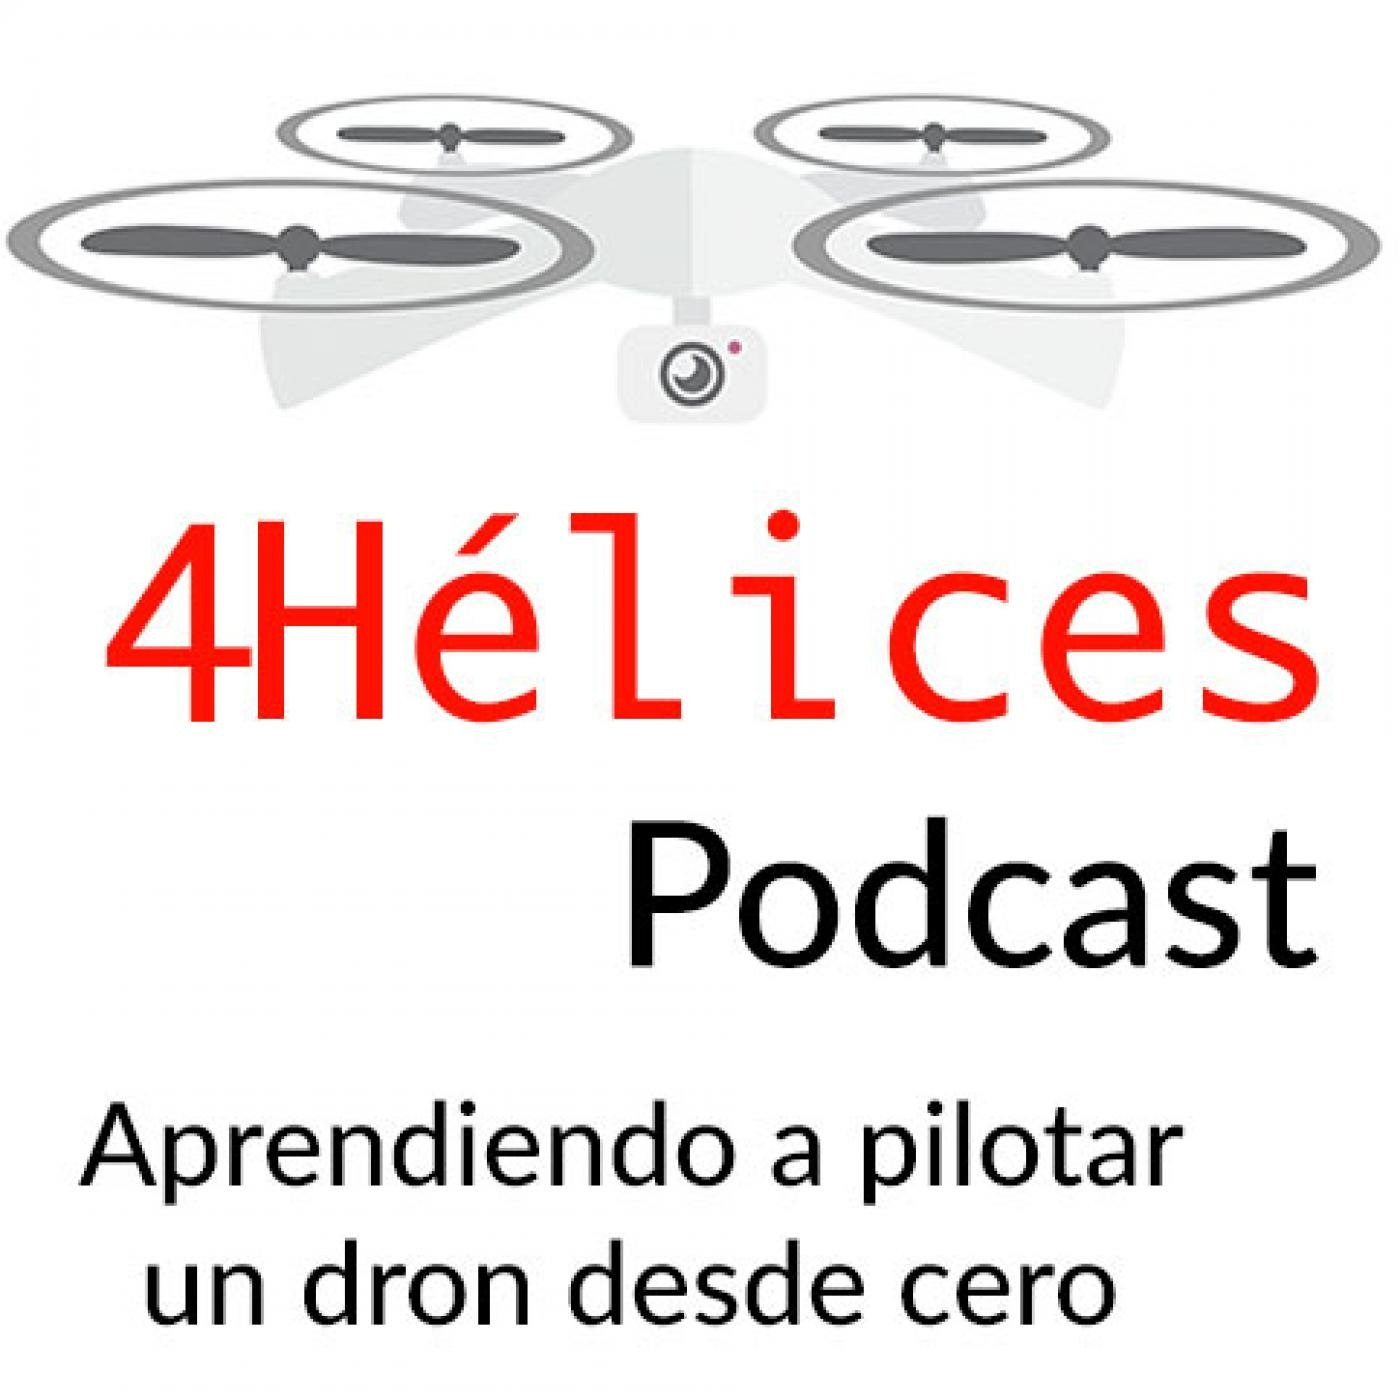 <![CDATA[4Hélices podcast]]>